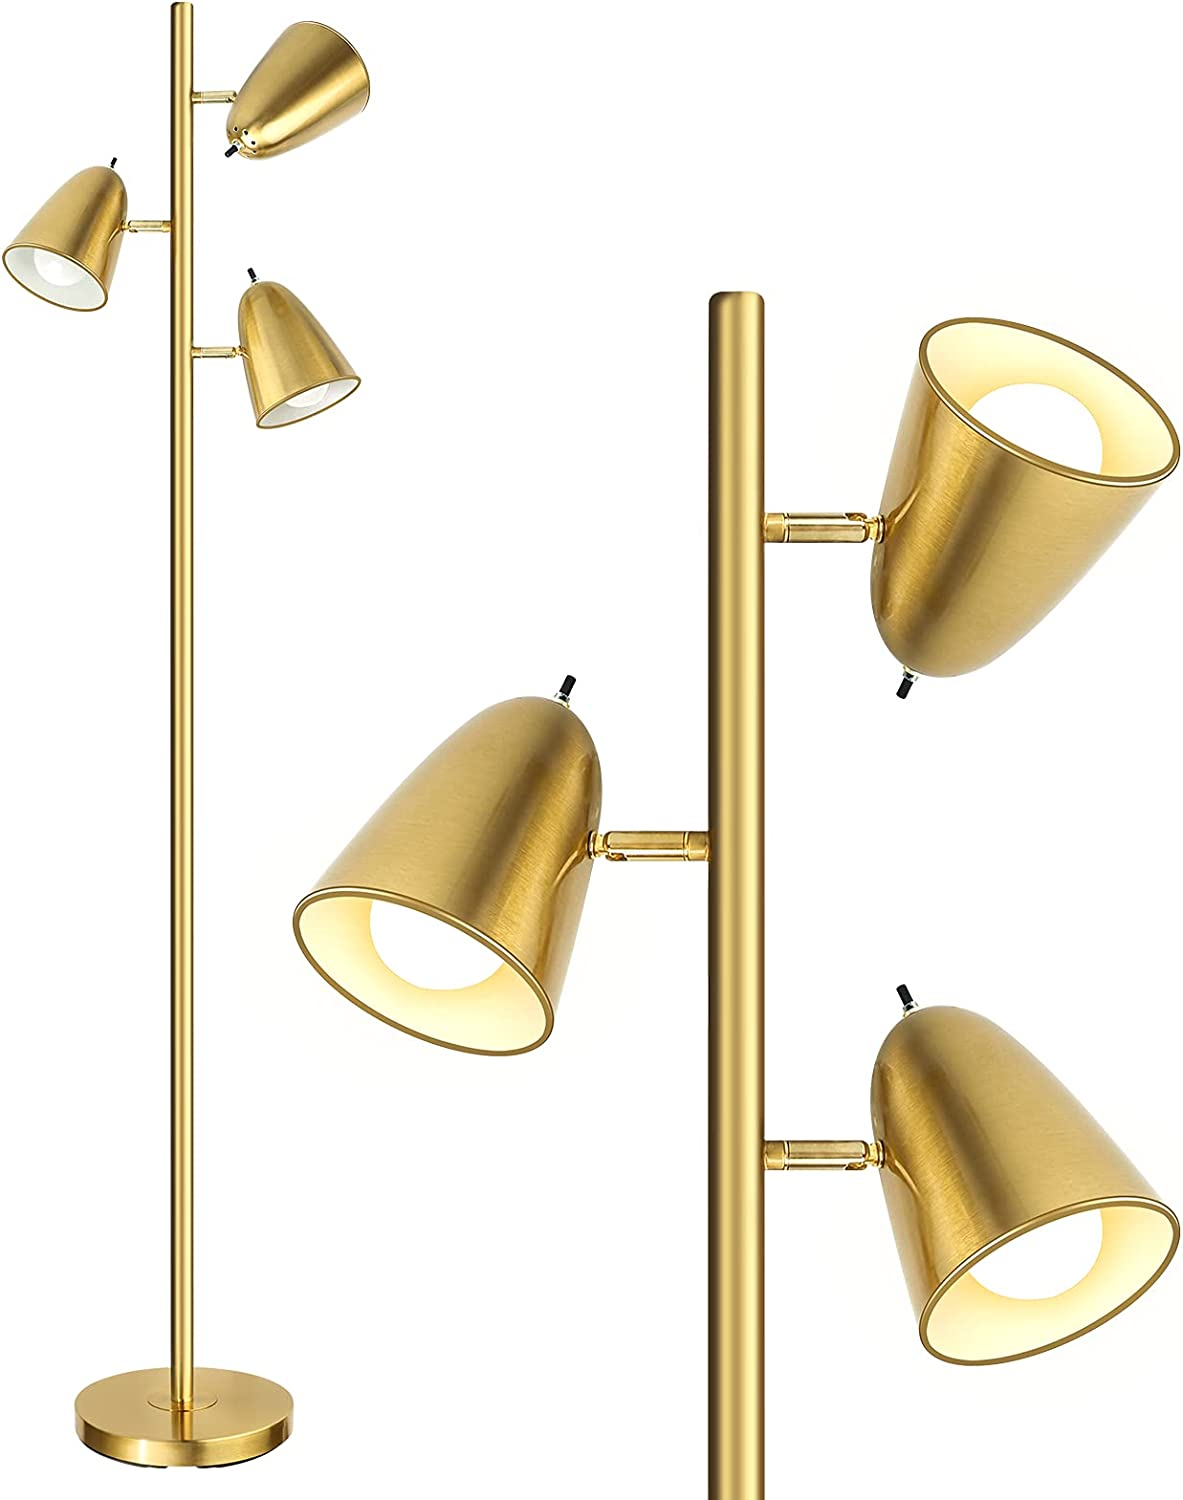 """Qimh Industrial Challenge the lowest price Floor Lamp with 3 Bulbs 64"""" Pol Light Tall Max 63% OFF"""